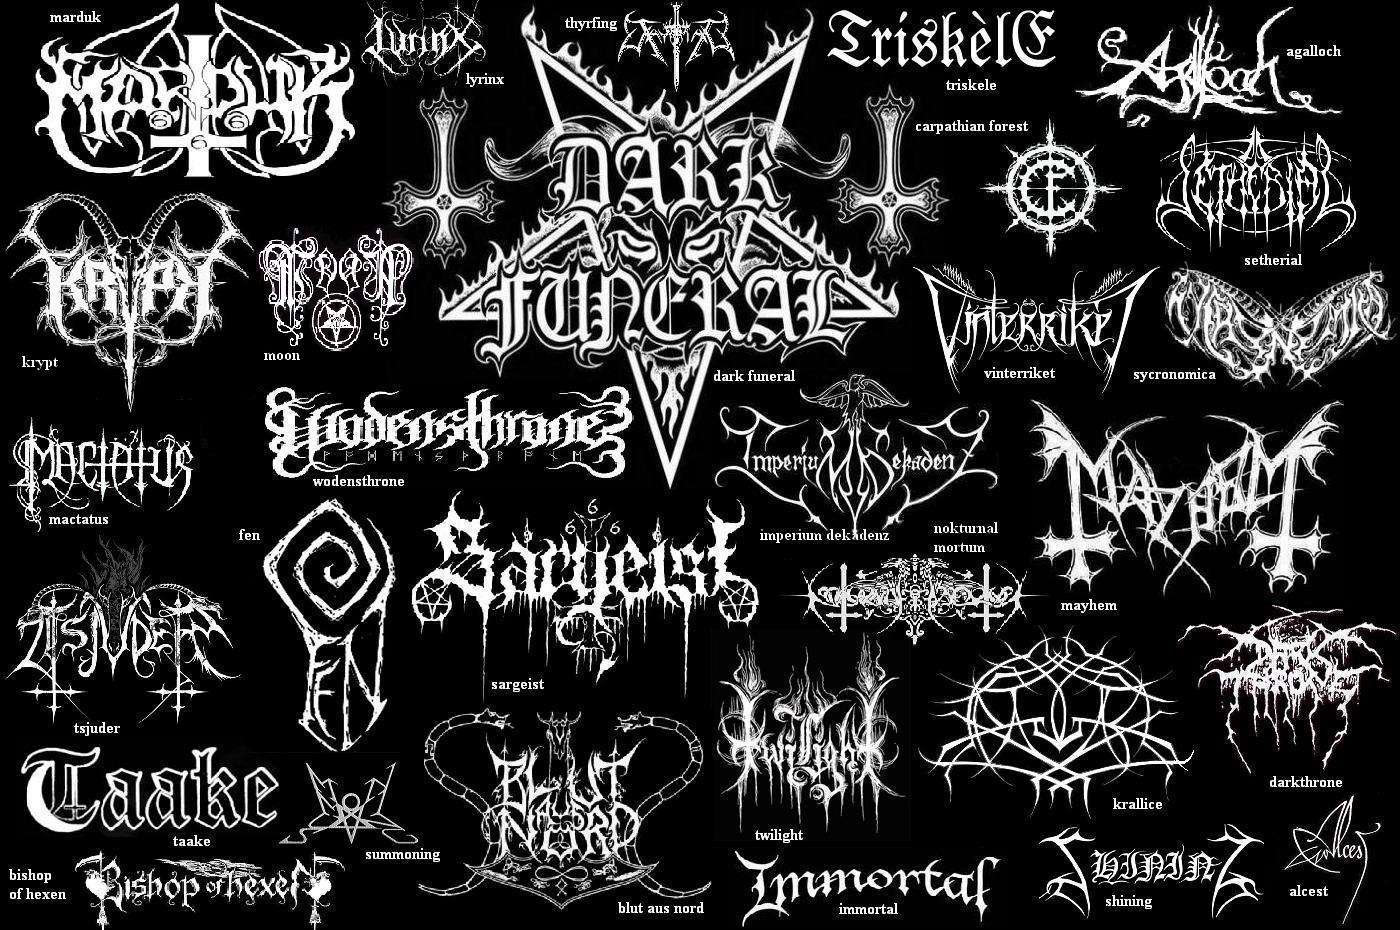 black metal band names